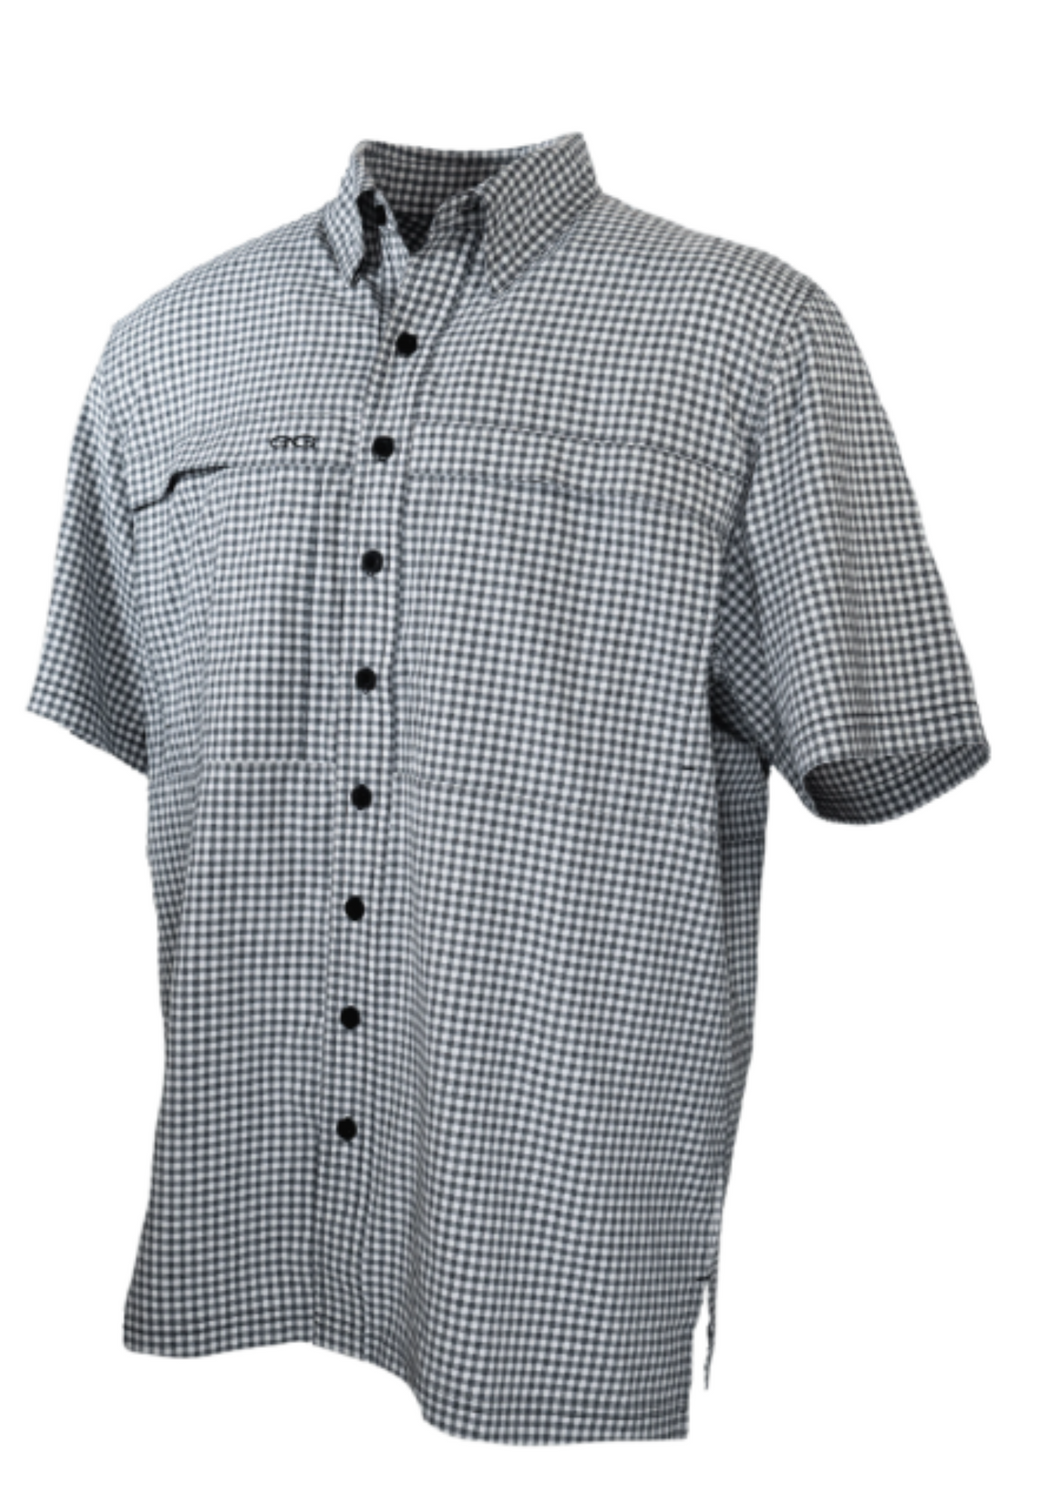 GameGuard® TekCheck Shirt White